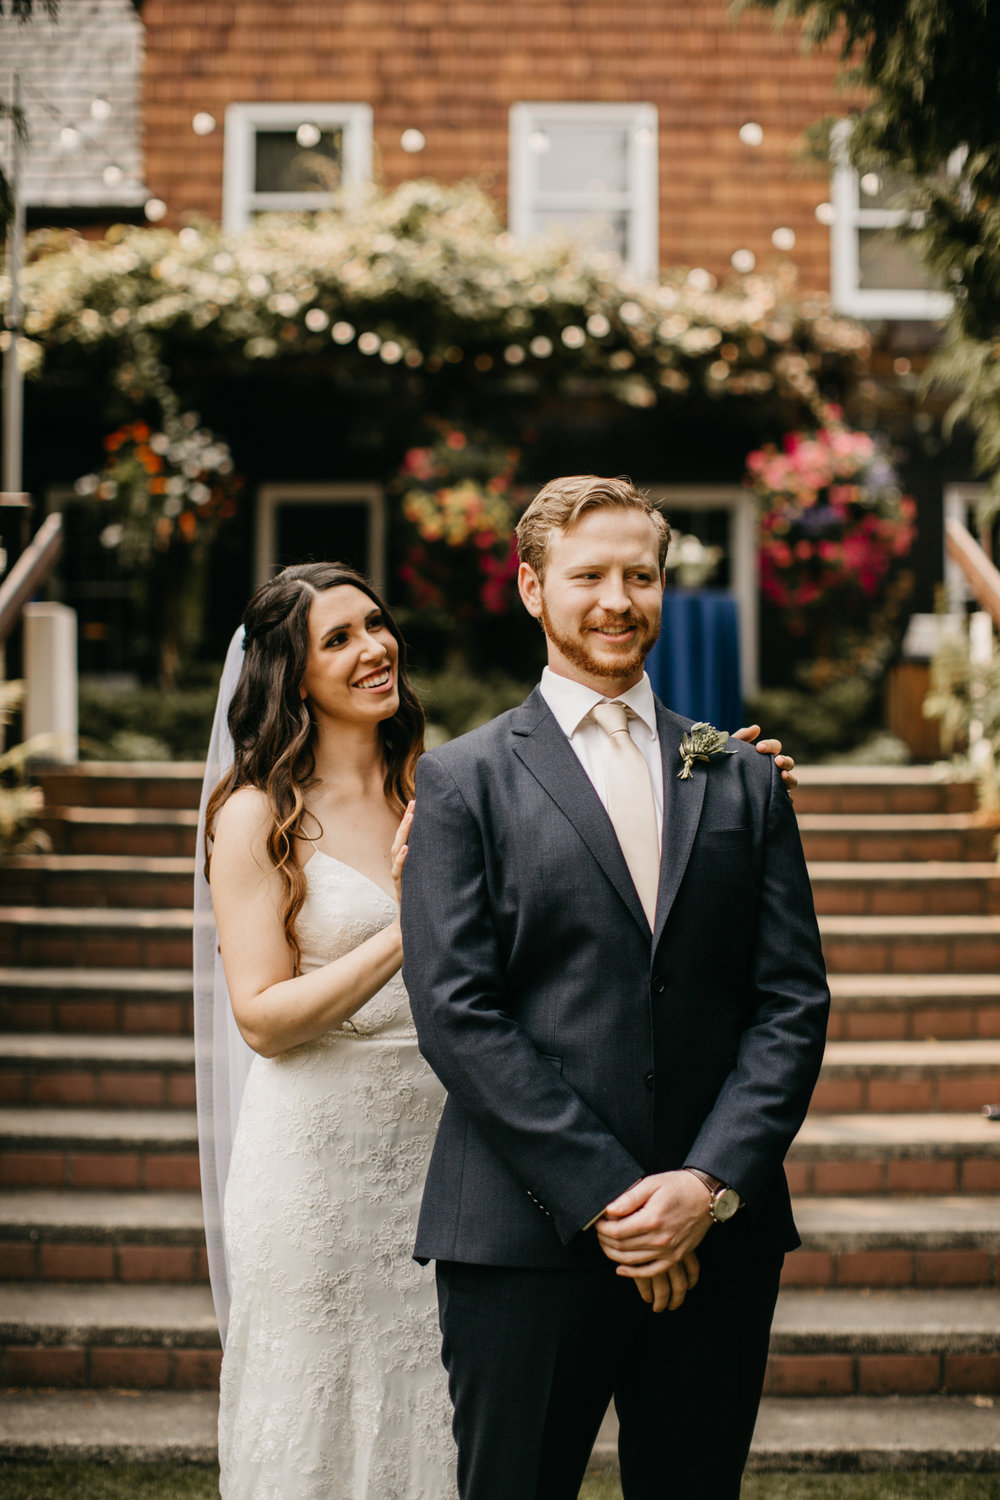 Max&SamPhoto_Seattle Wedding Photographer_Bellevue Robinswood House_028.jpg